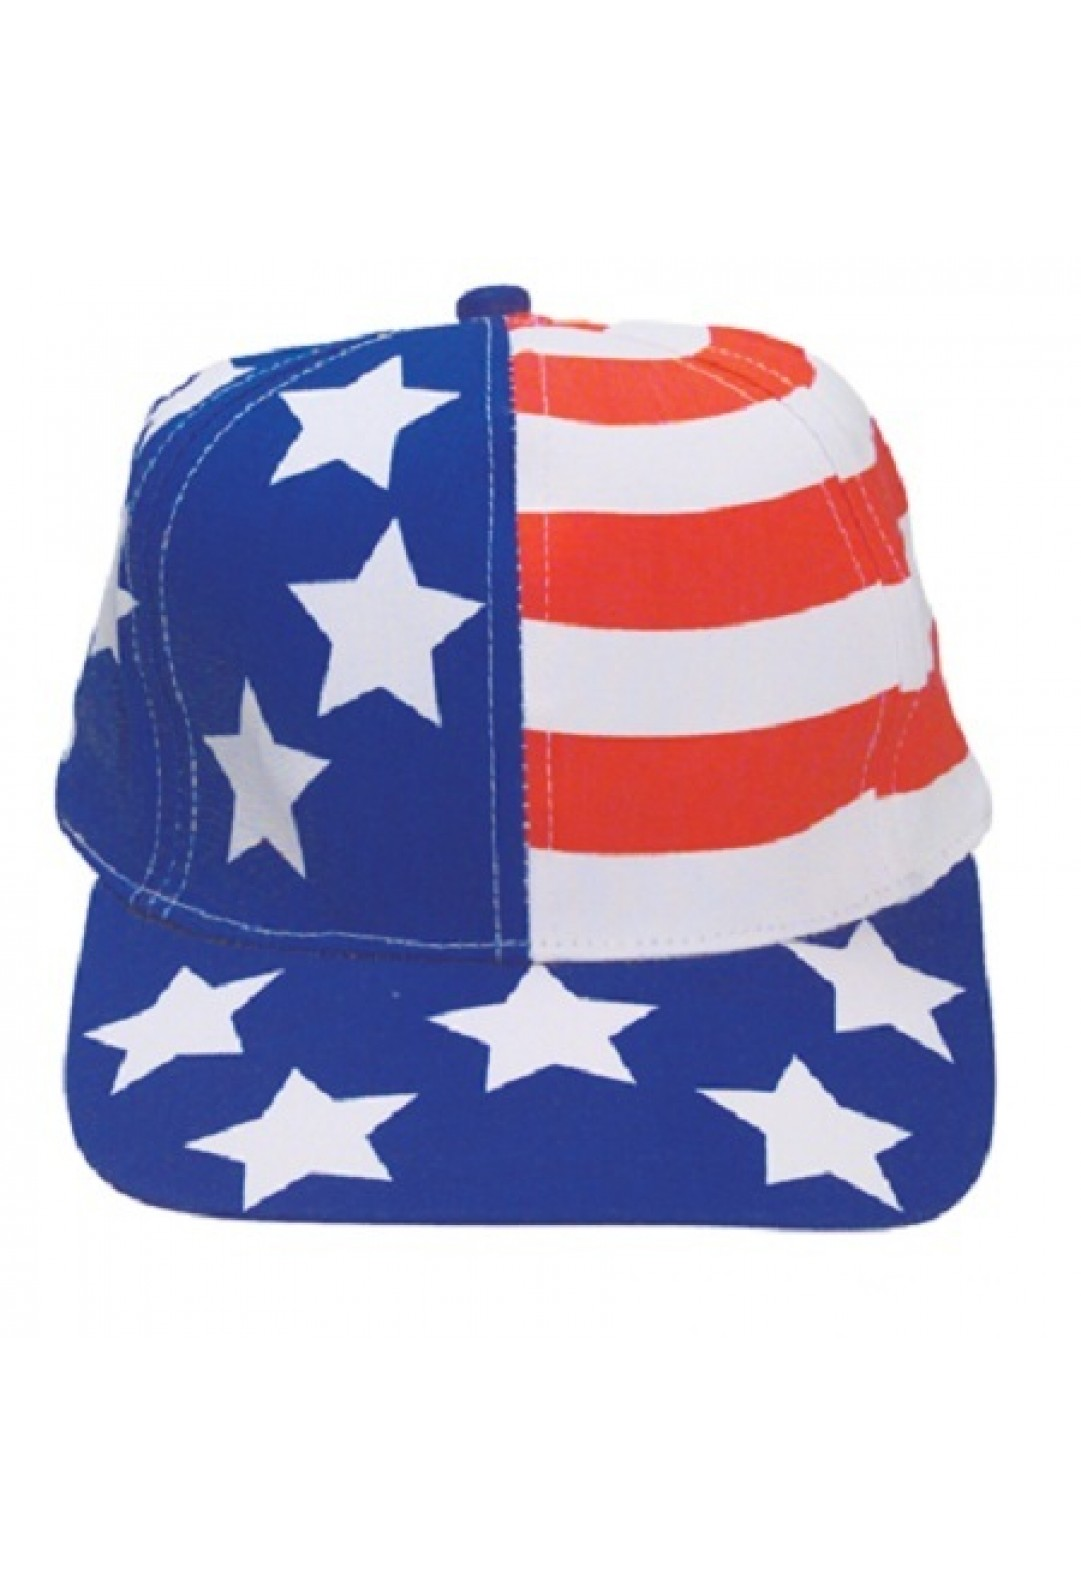 USA flag baseball cap 09db25f3a207